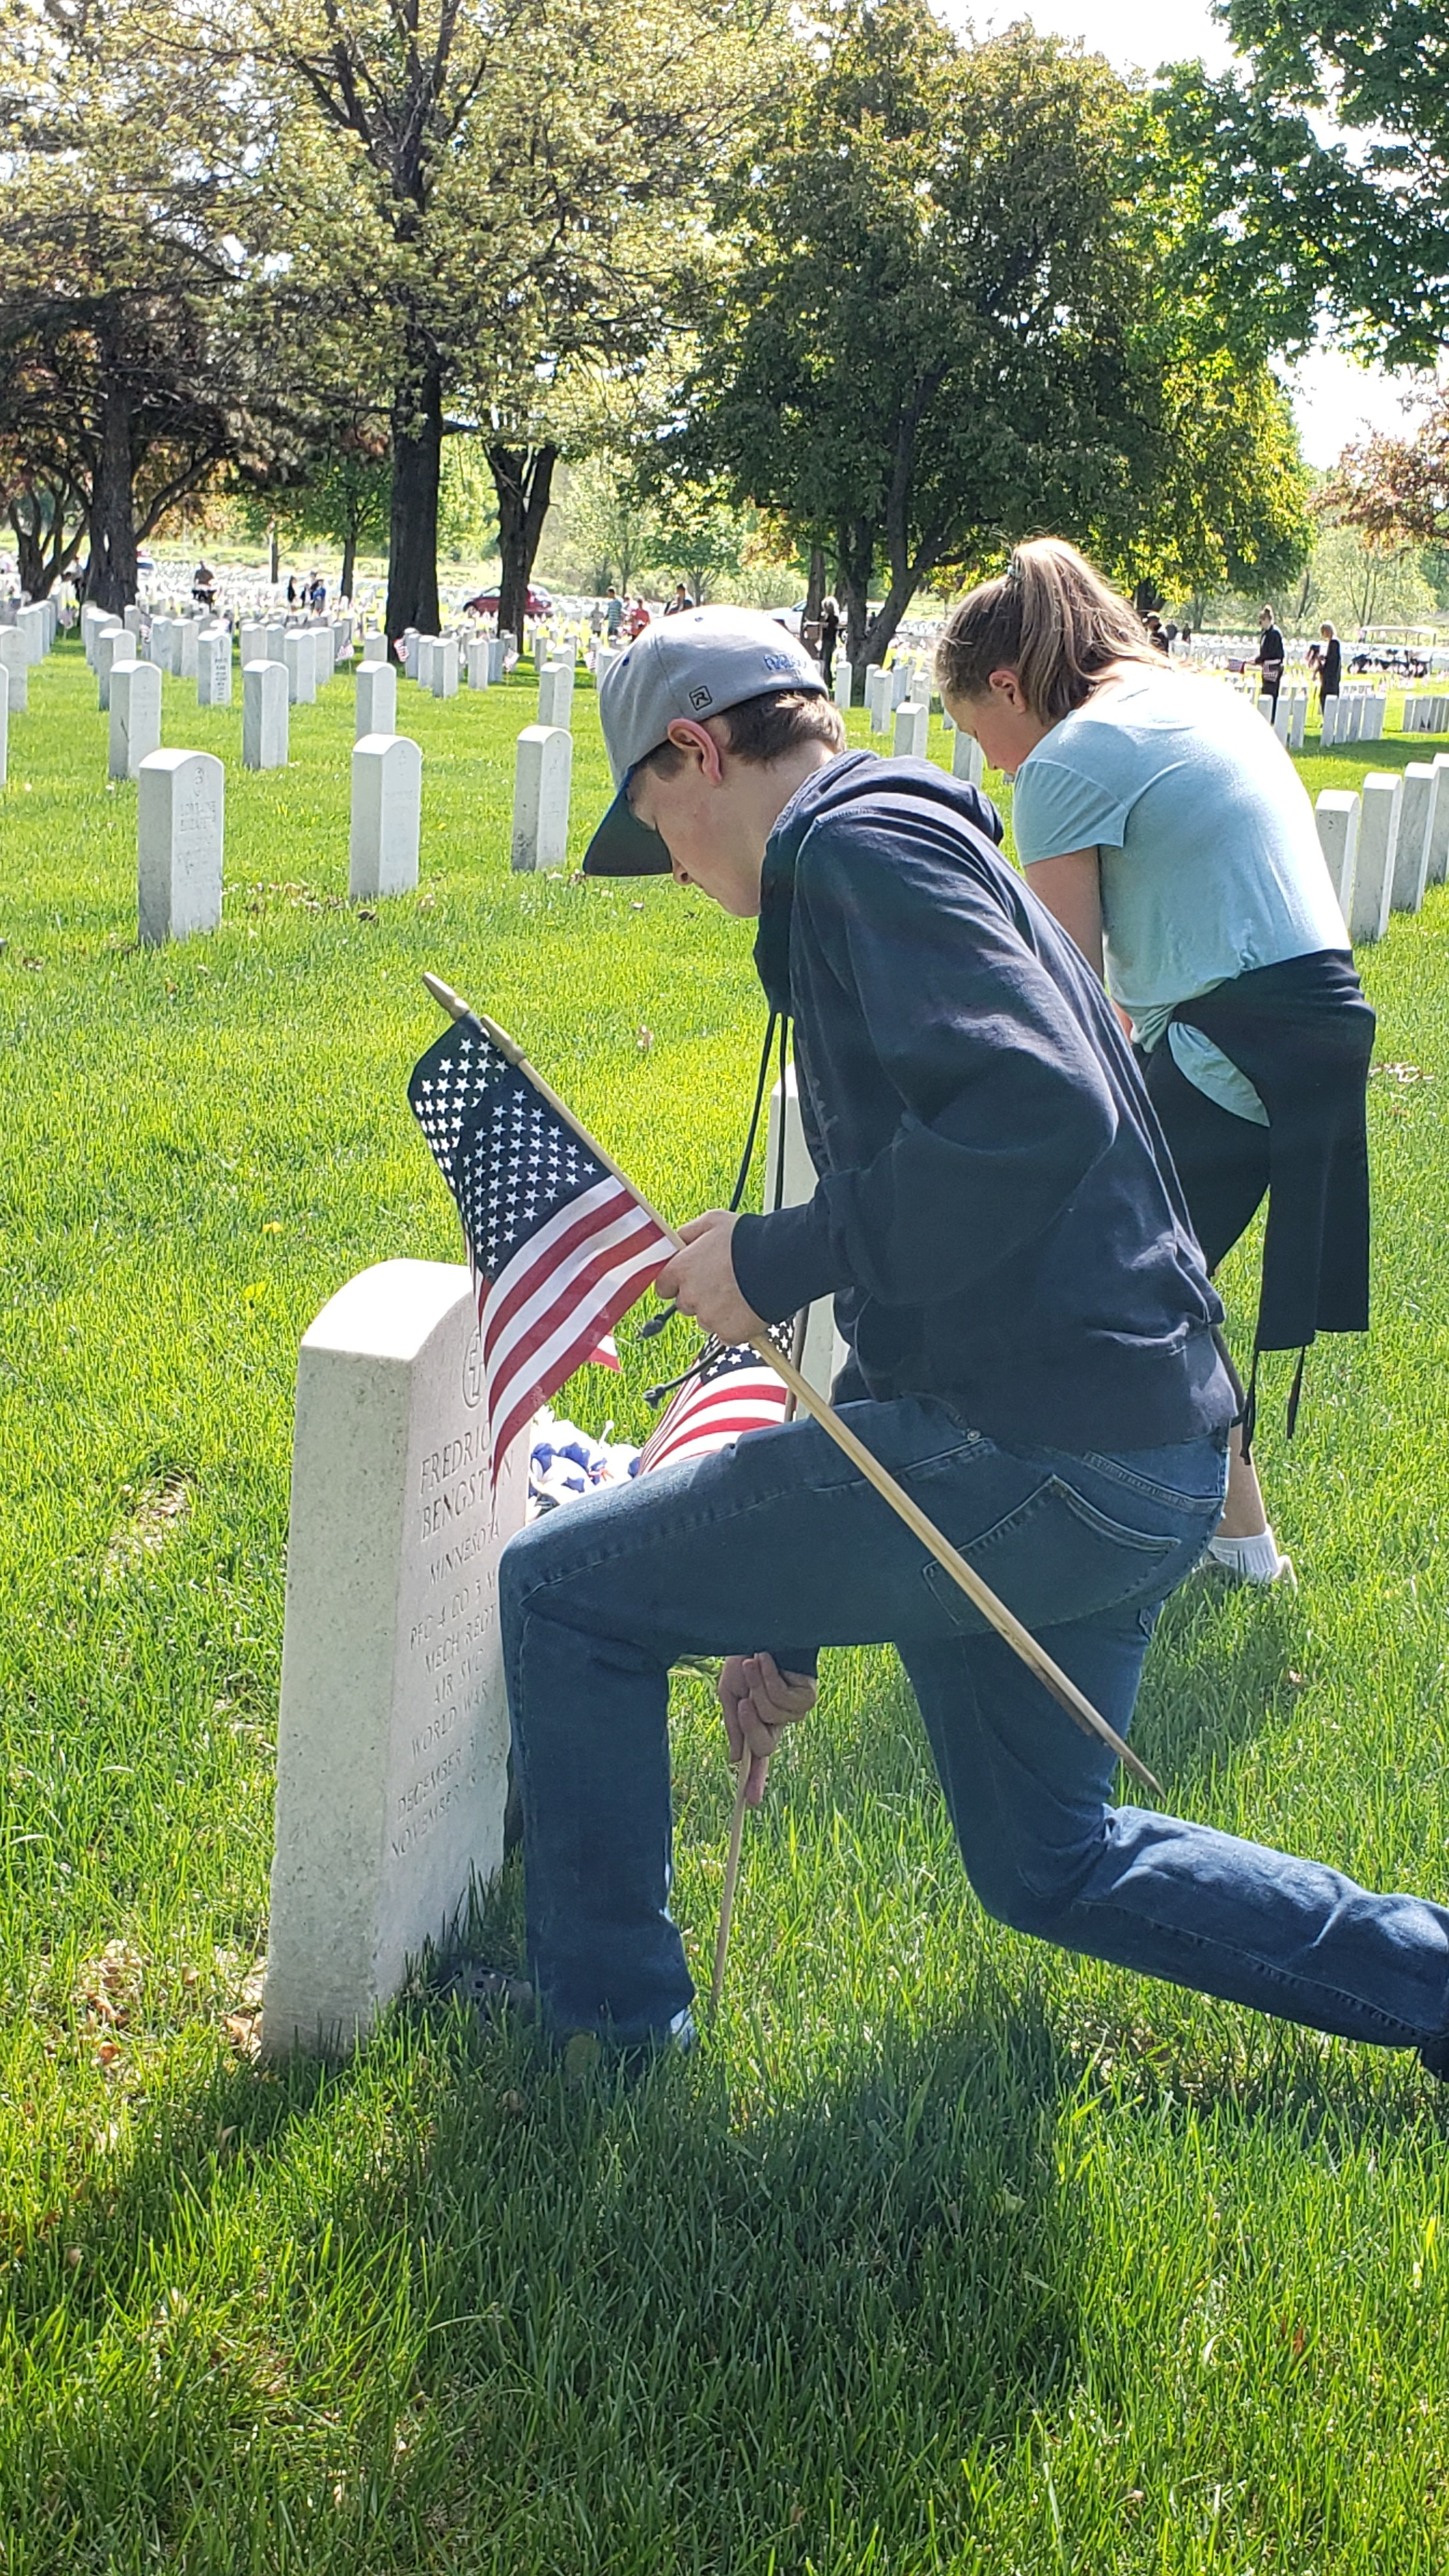 Kids placing flags on headstones at Fort Snelling National Cemetary in Minnesota